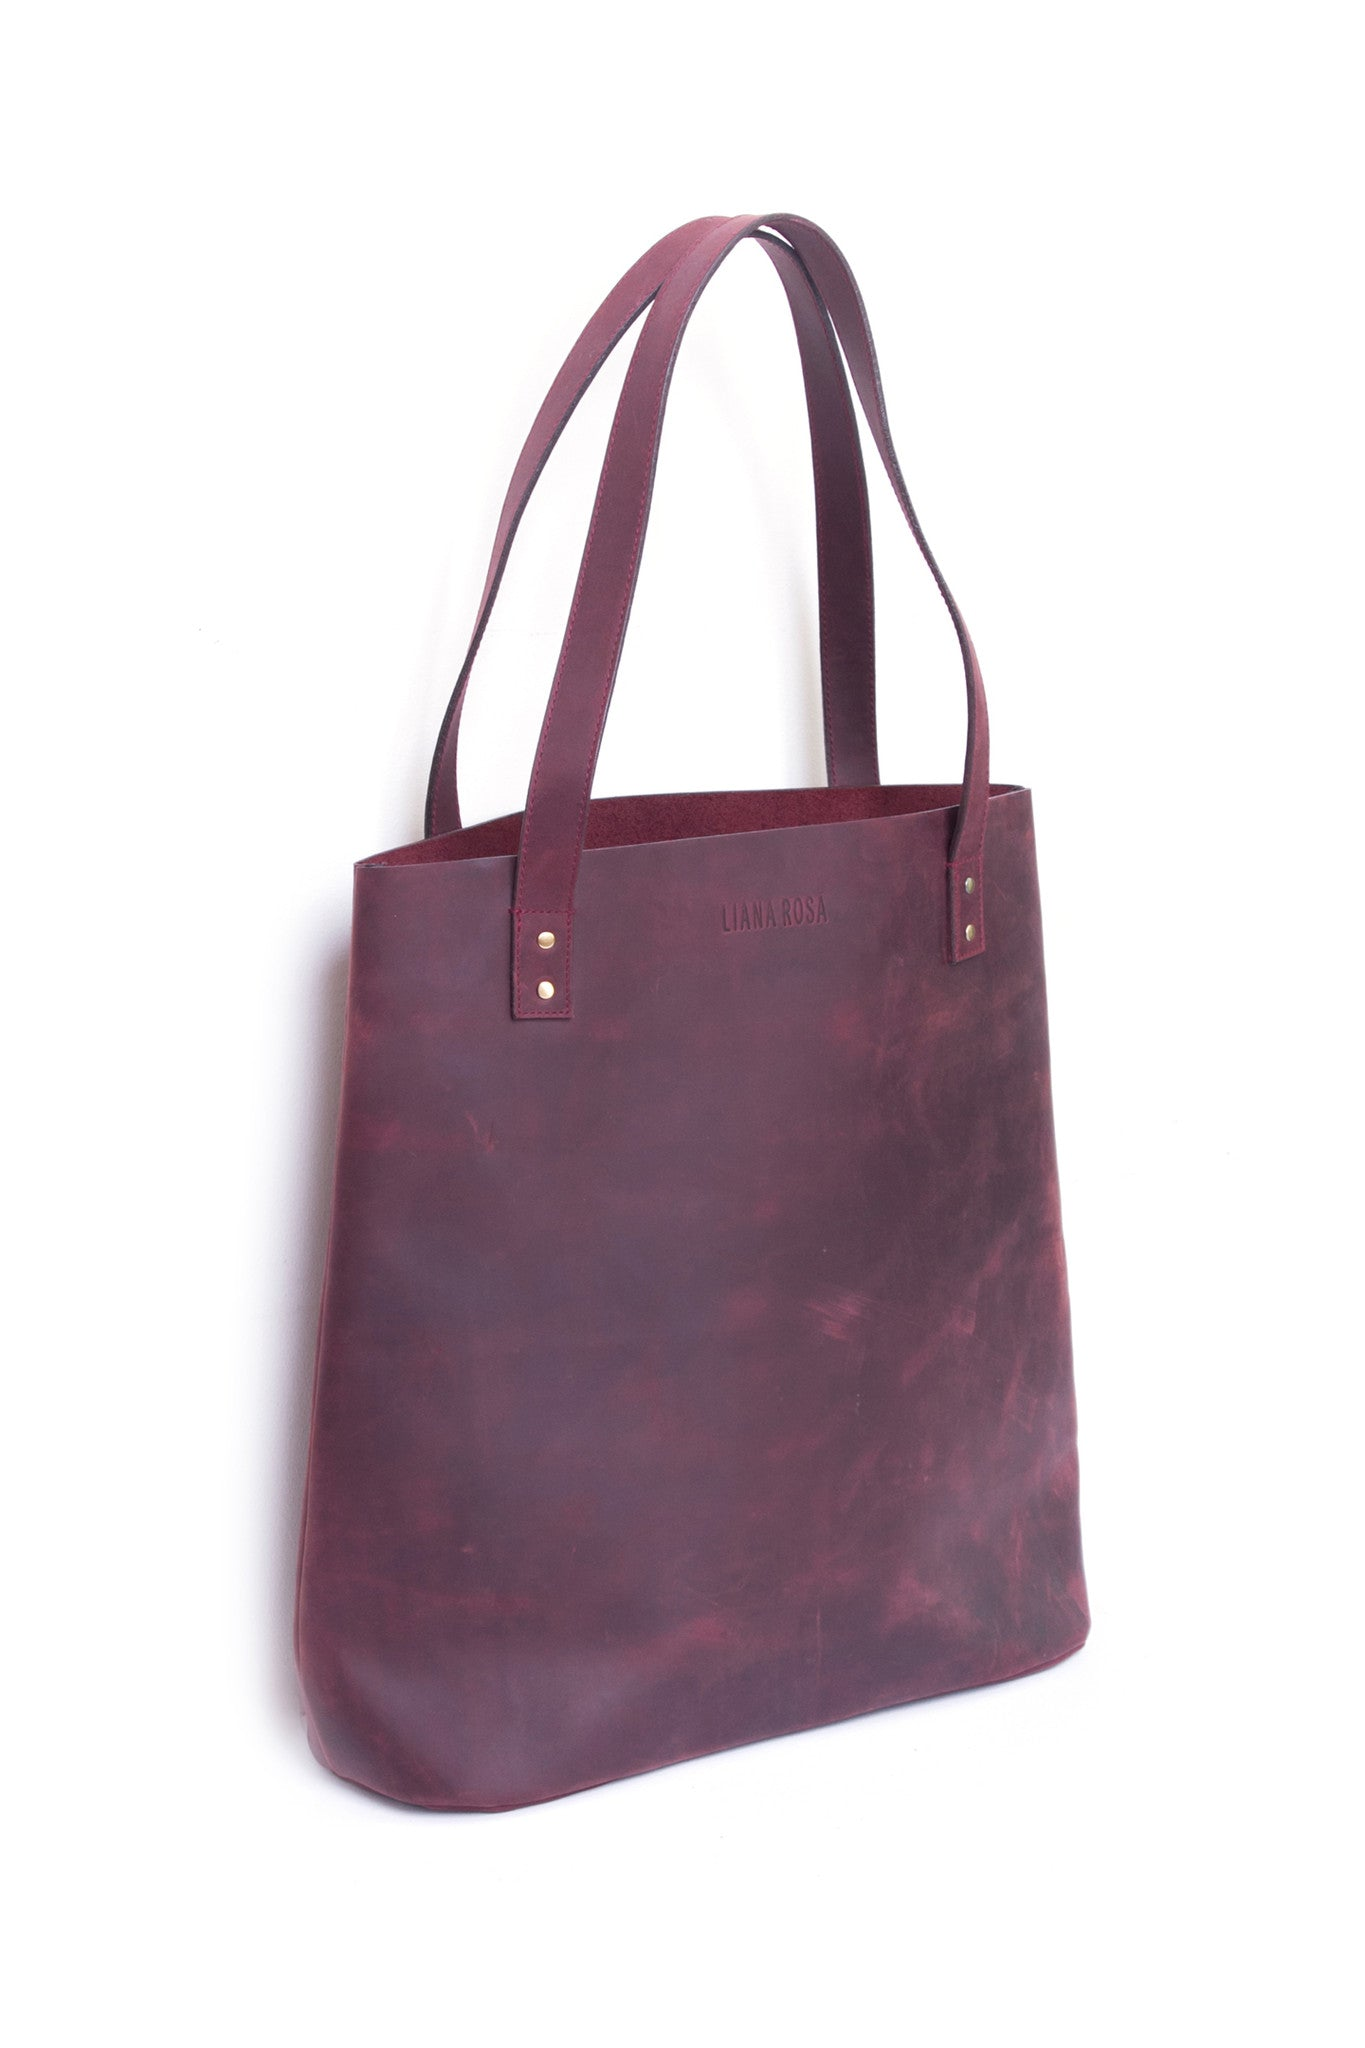 Henry Sangria Burgundy Leather Tote Bag Side View by Liana Rosa